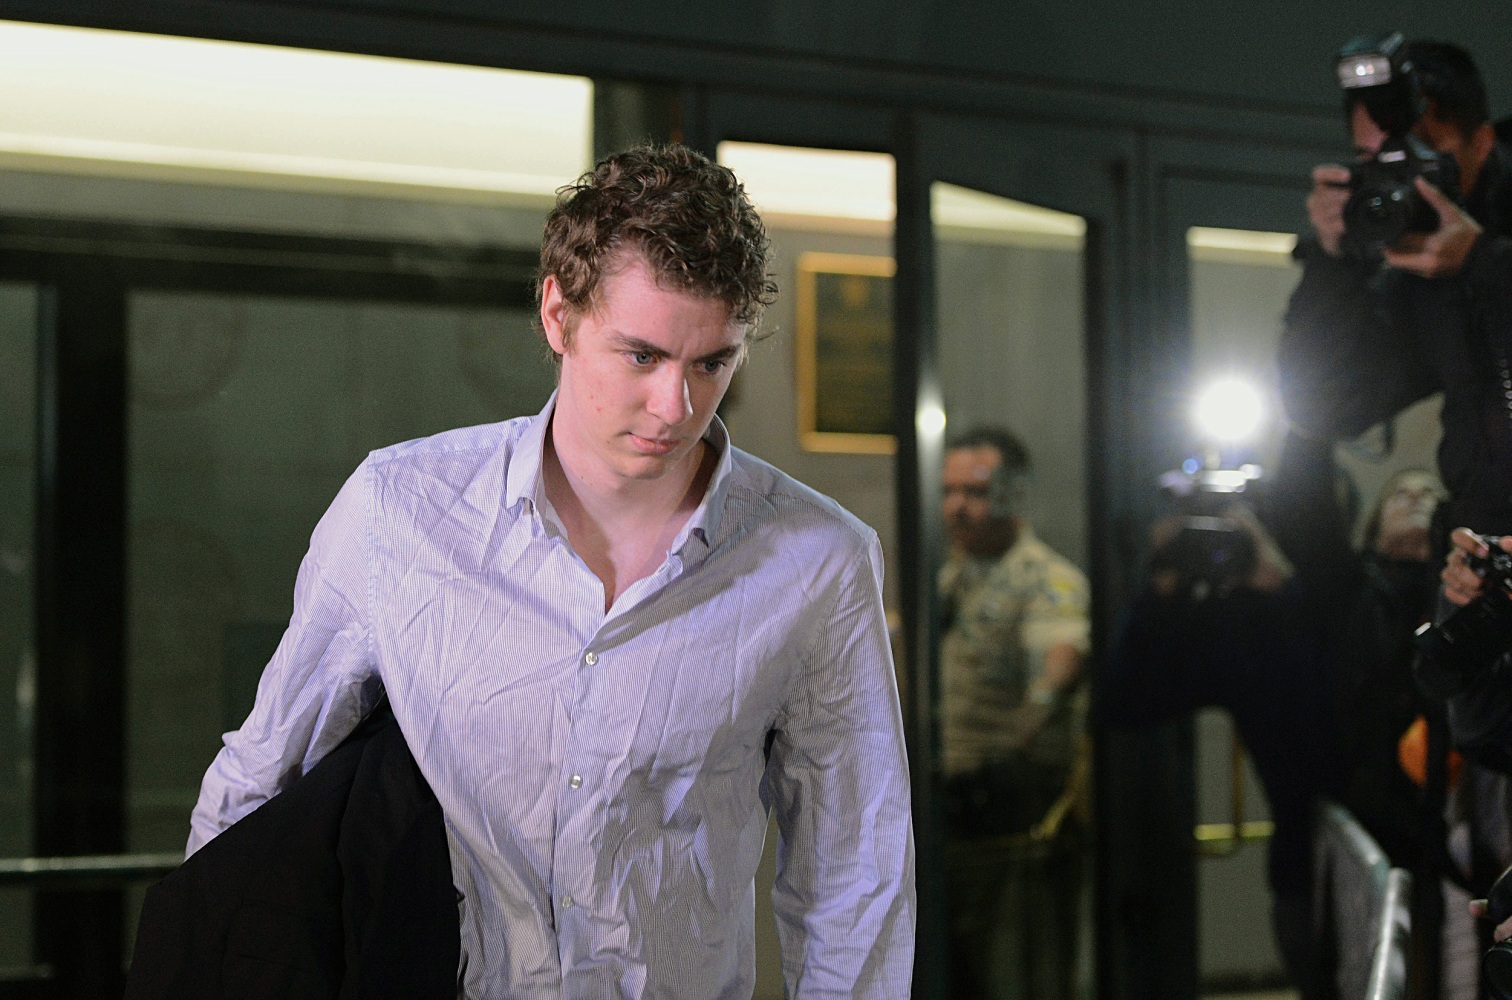 Former Stanford Swimmer Brock Turner Files Appeal in Sex Assault Case